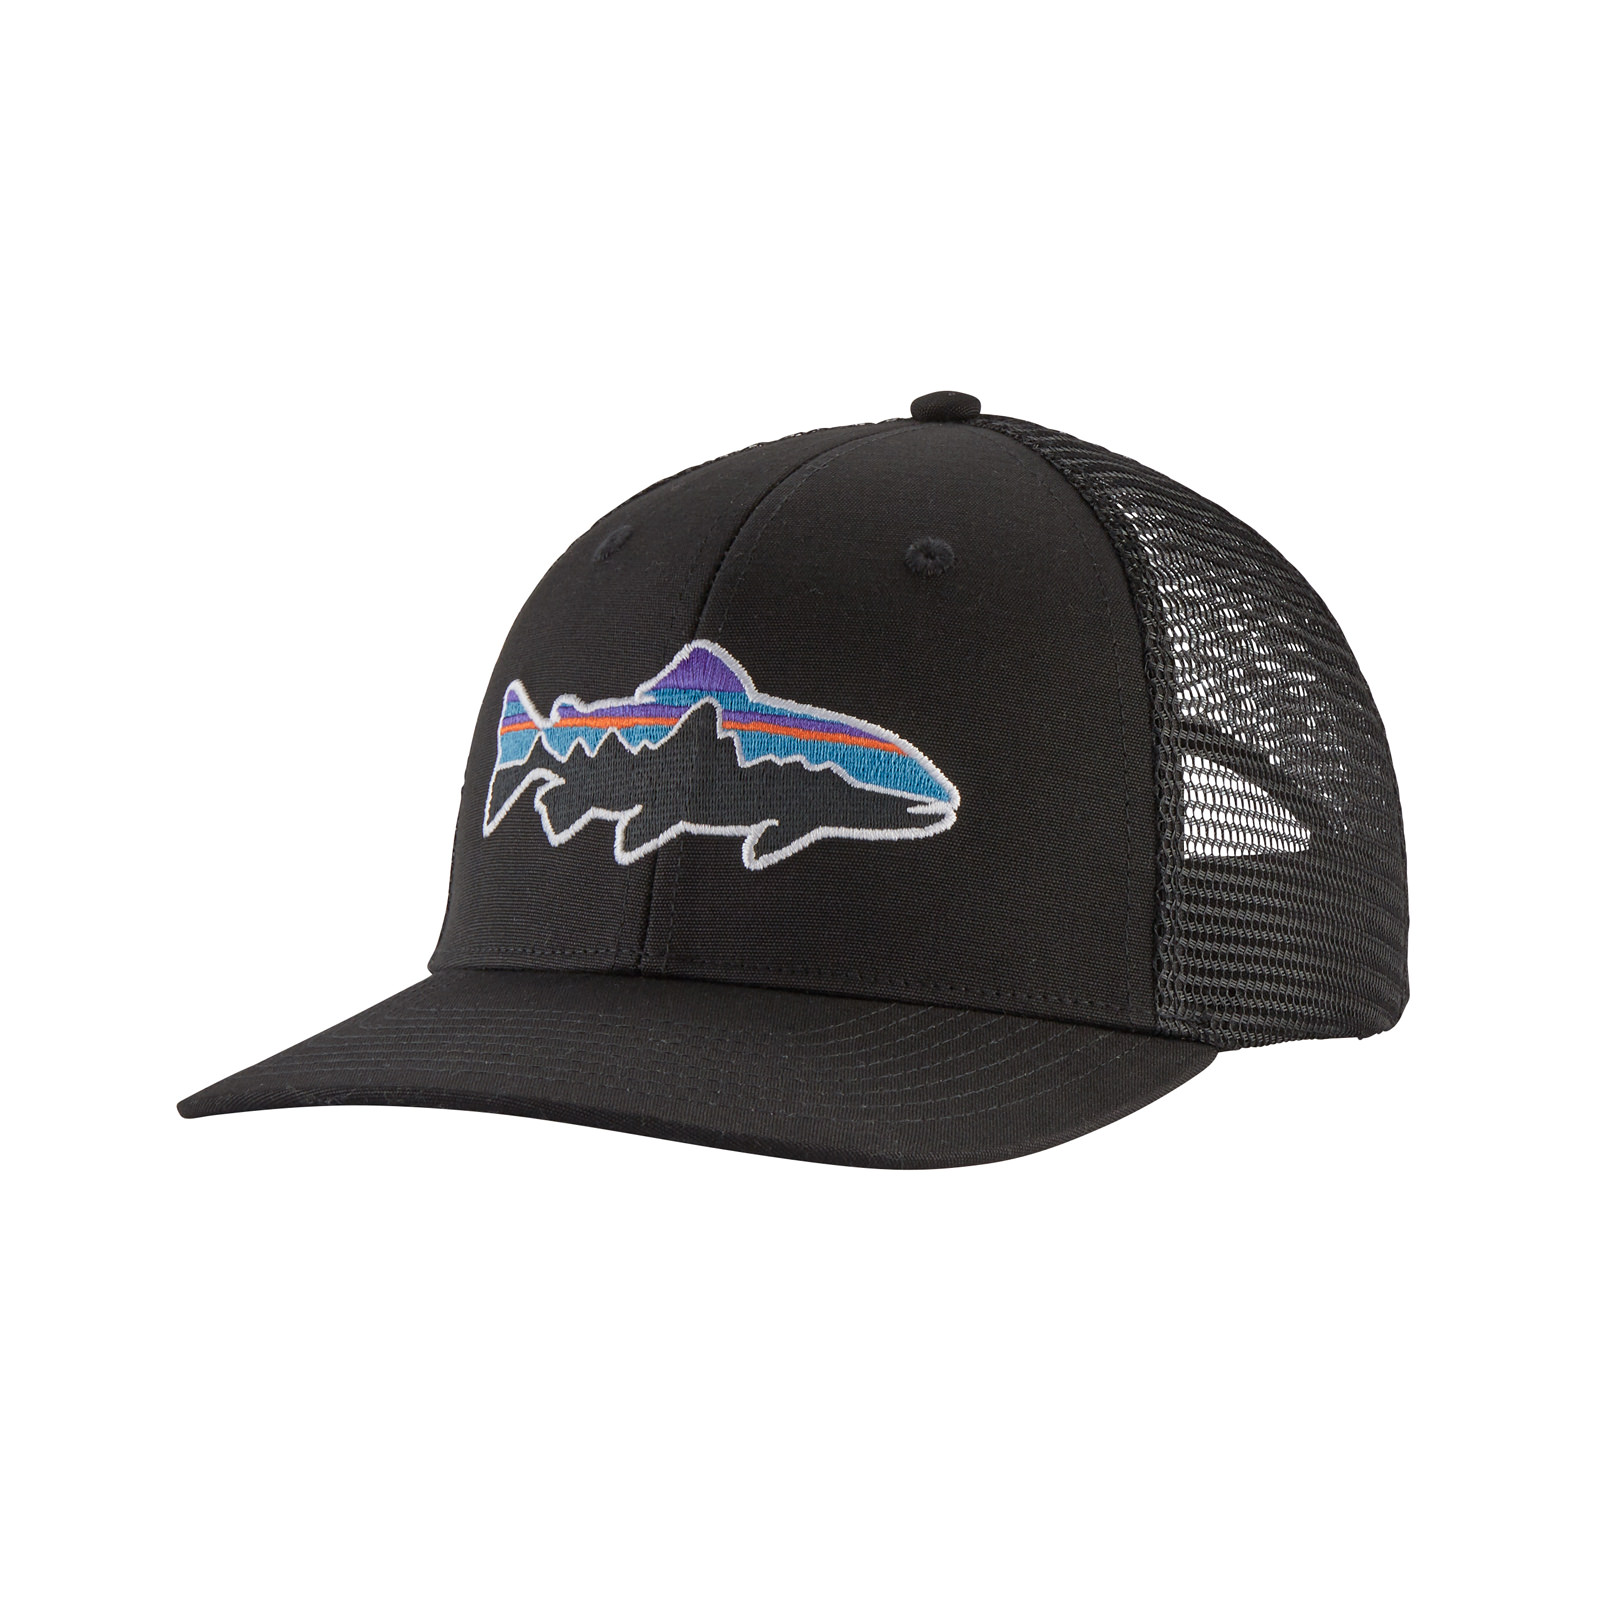 aa4e0271 Patagonia Fitz Roy Trout Trucker Hat - AvidMax